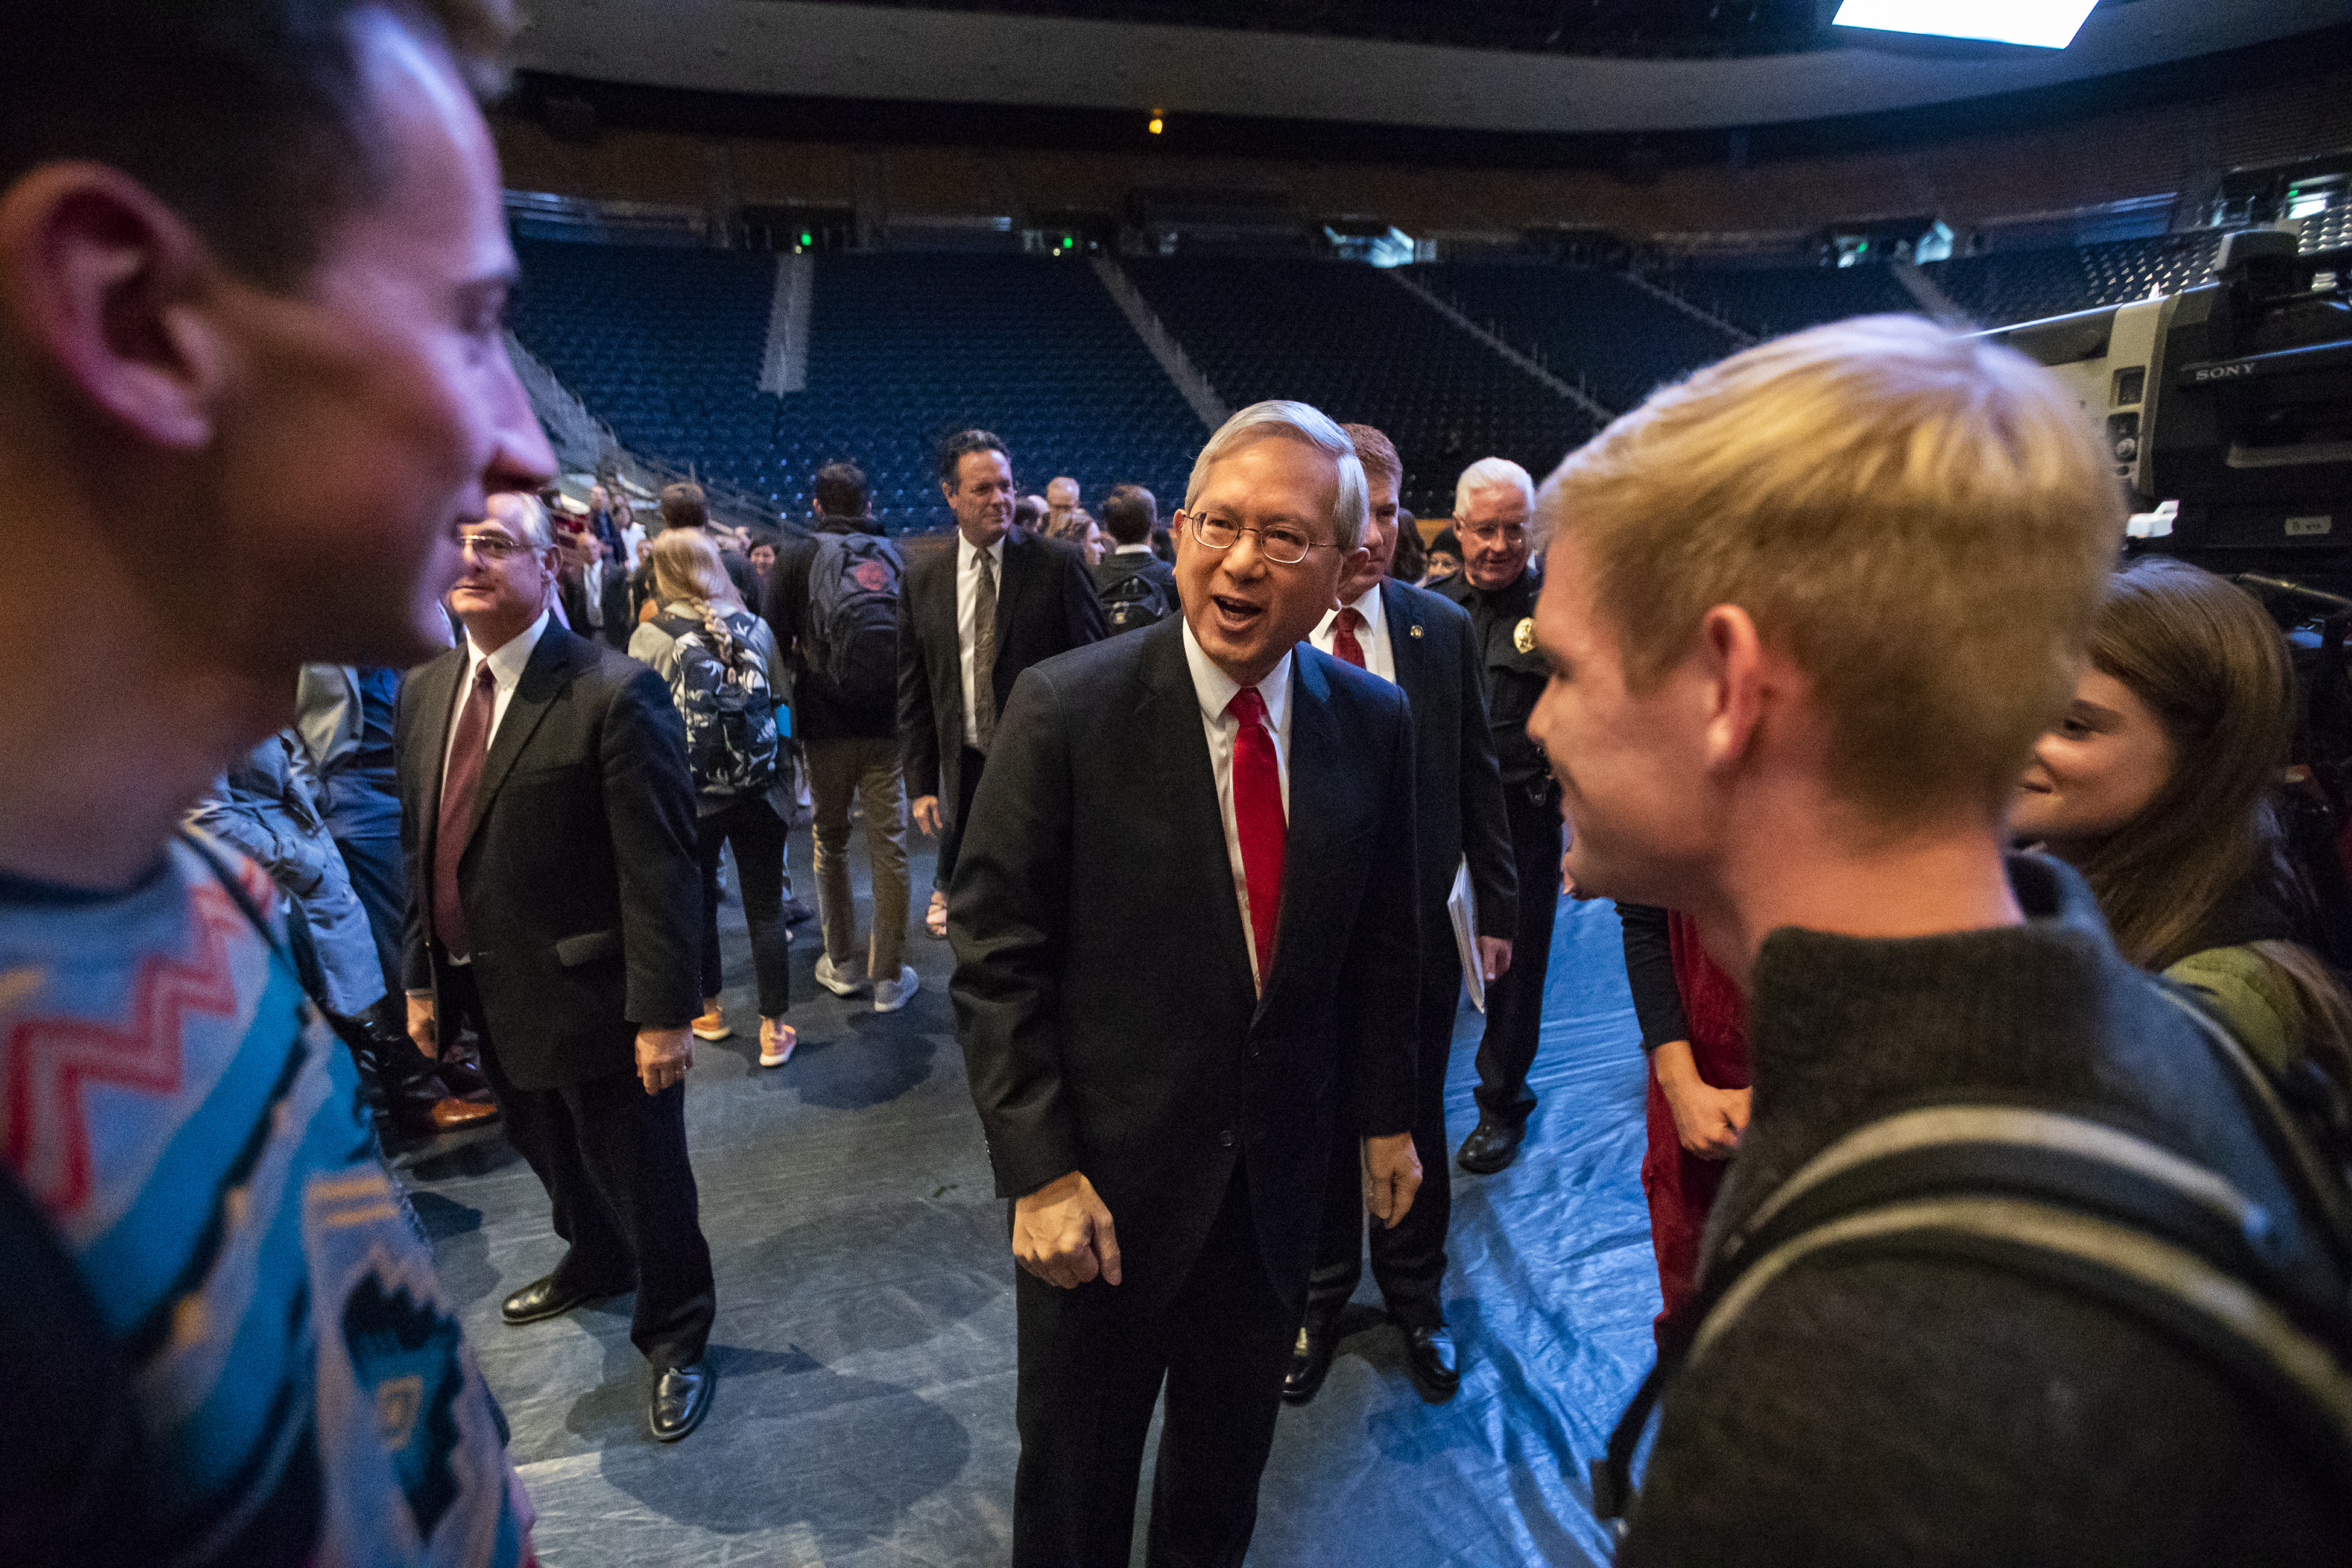 Elder Gerrit W. Gong of the Quorum of the Twelve Apostles shakes hands and talks with students and others who attended the BYU campus devotional on Tuesday, Oct. 16, 2018.